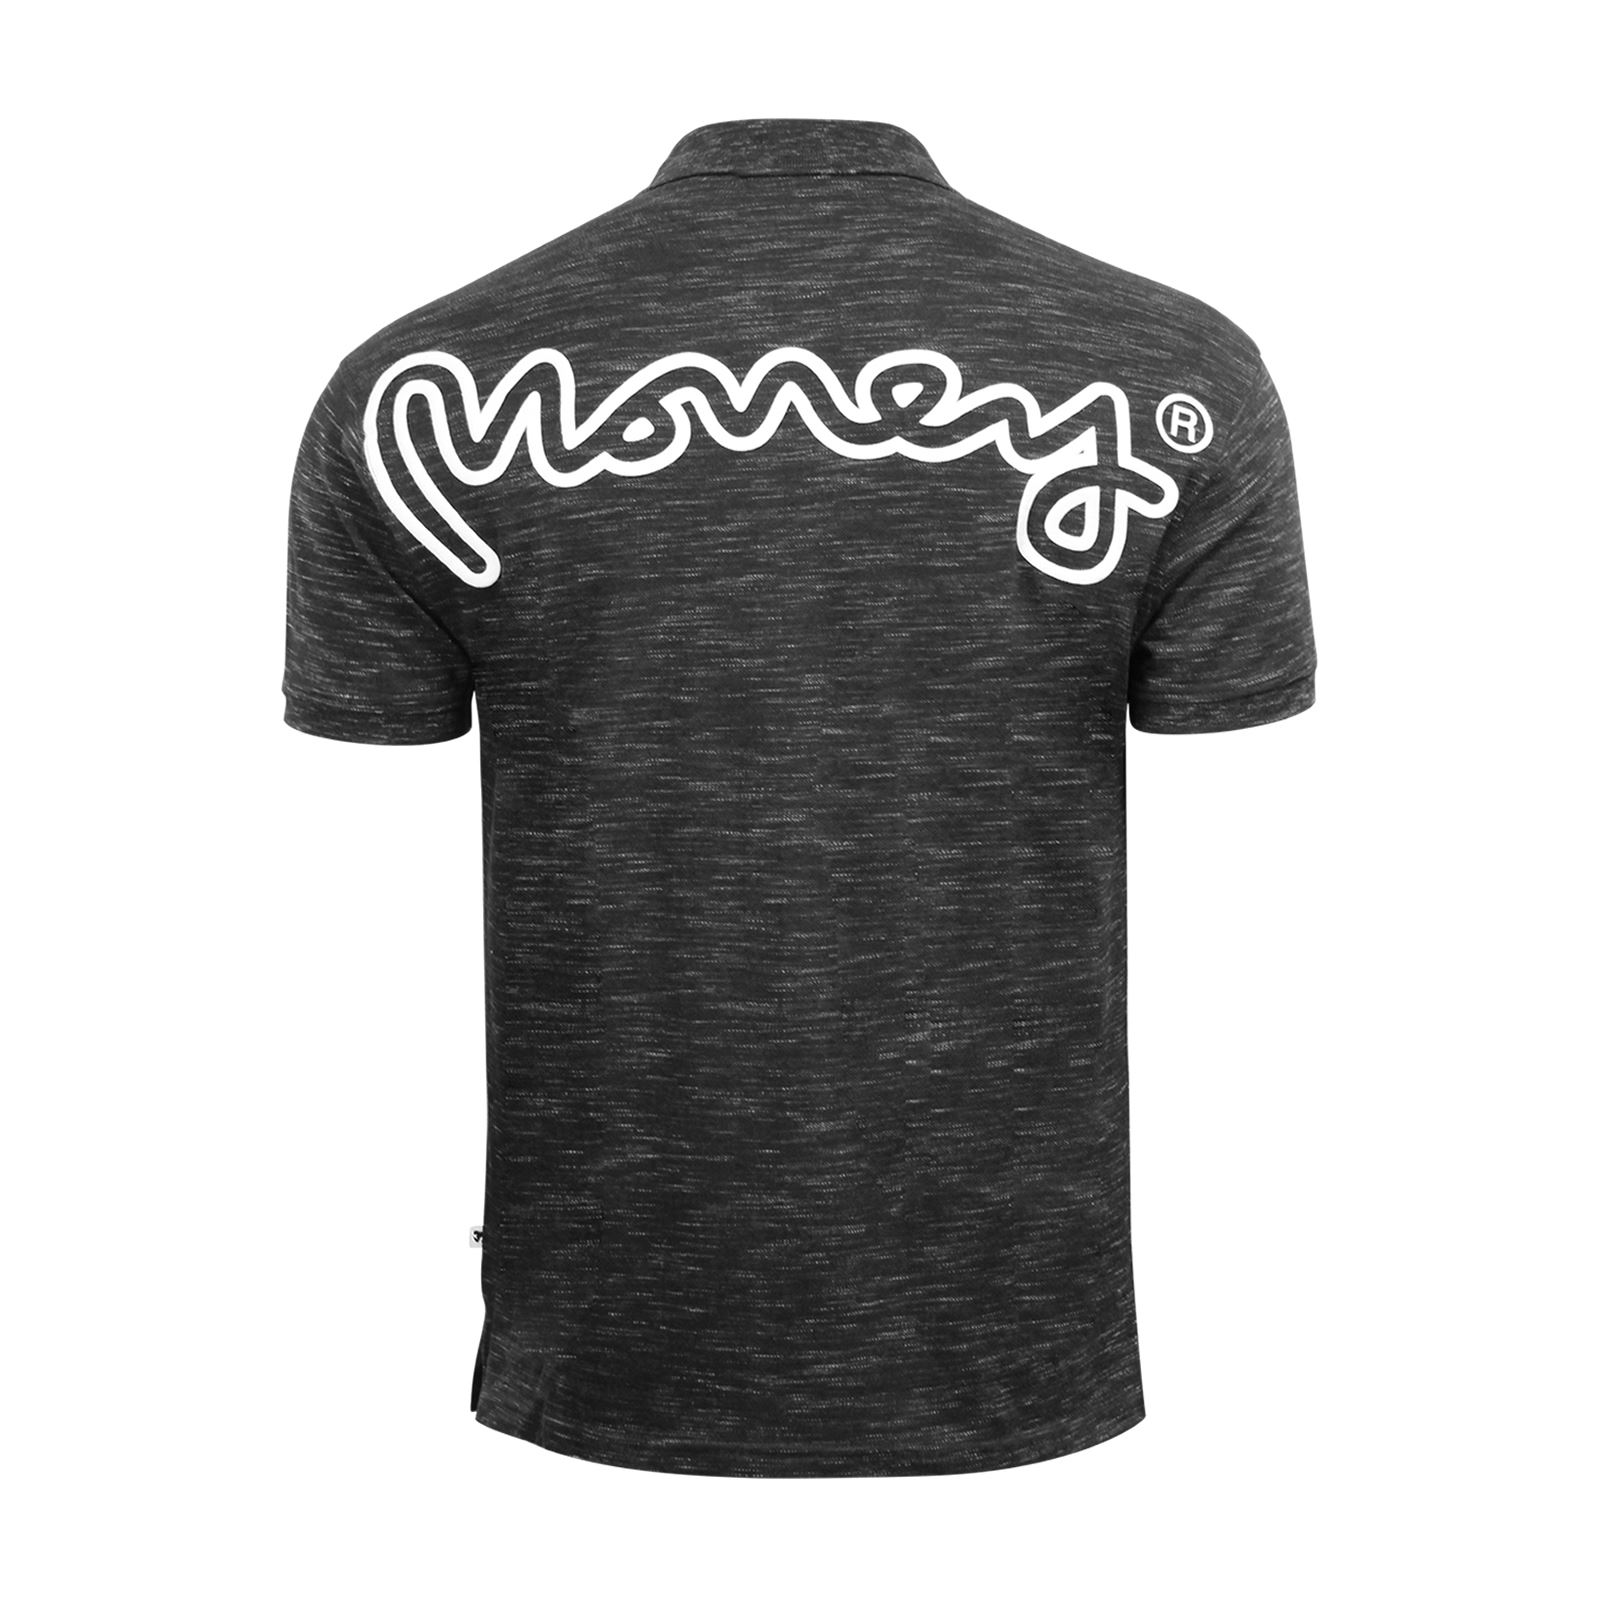 Mens-Polo-T-SHIRT-MONEY-toke-Rear-Printed-Short-Manche-Grindle-Collar-Casual-Top miniature 7